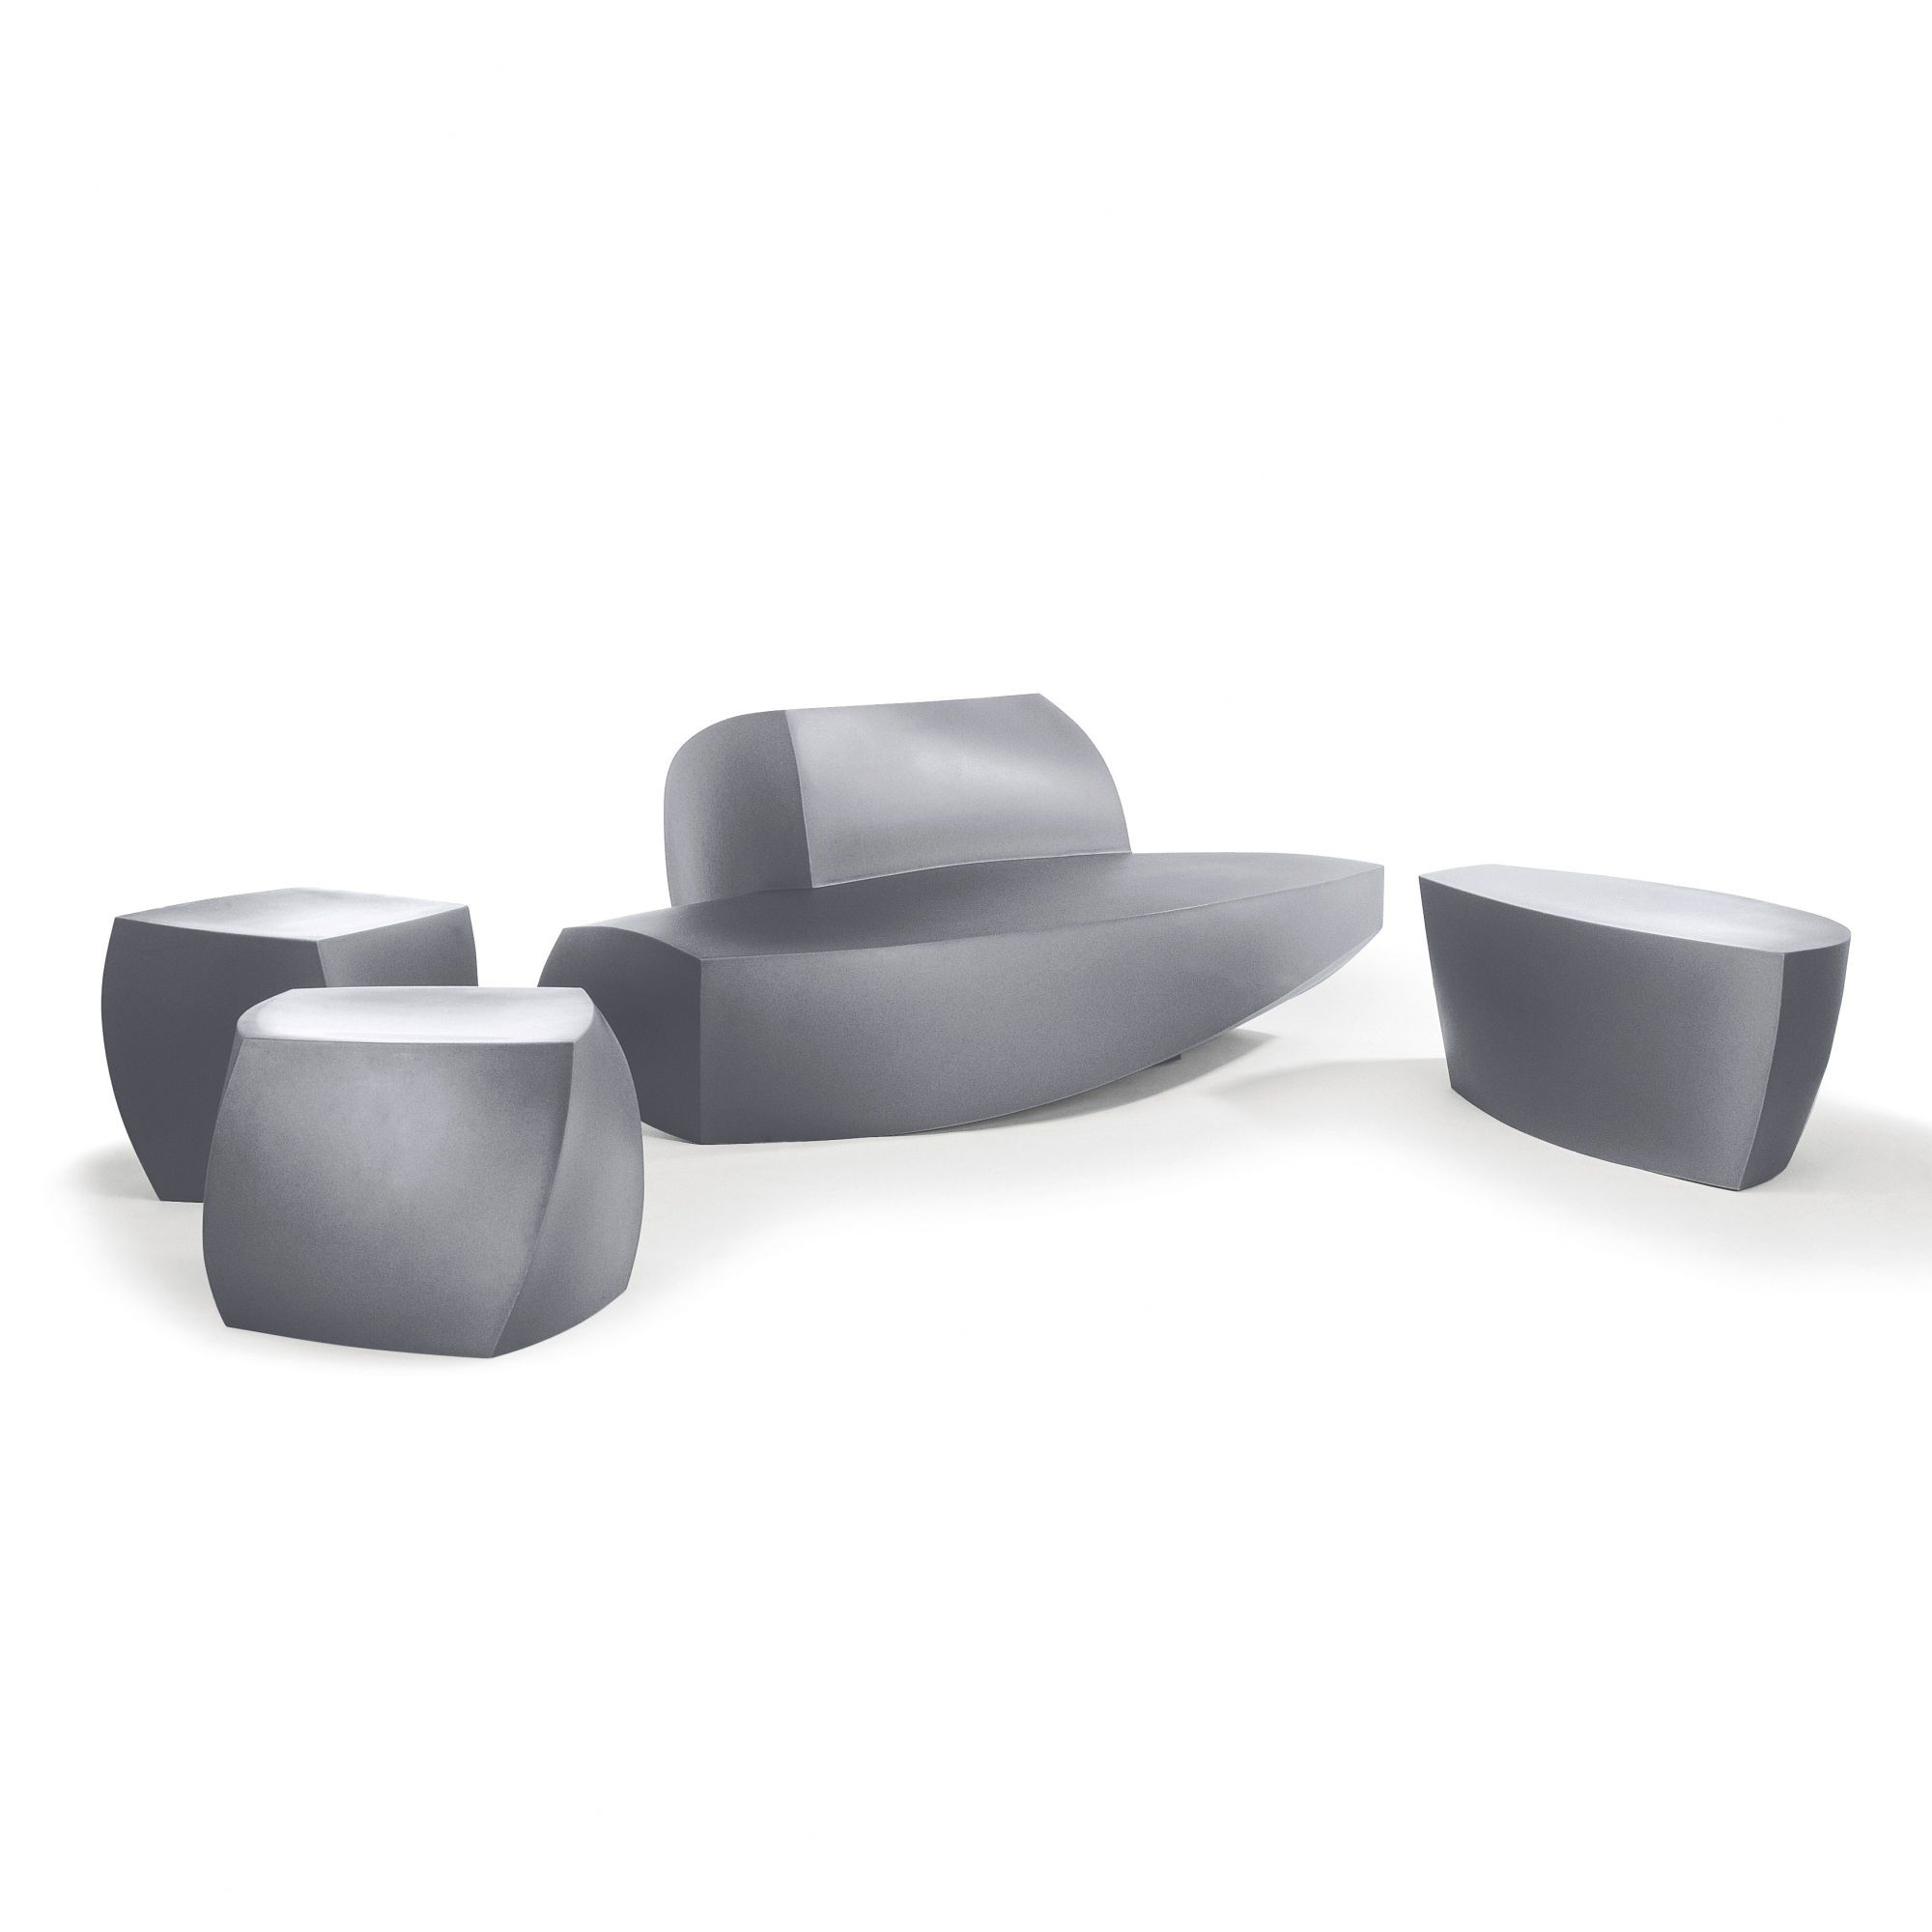 Lovely Outdoor Furniture: Heller Frank Gehry Bench Seating Group | AllModern